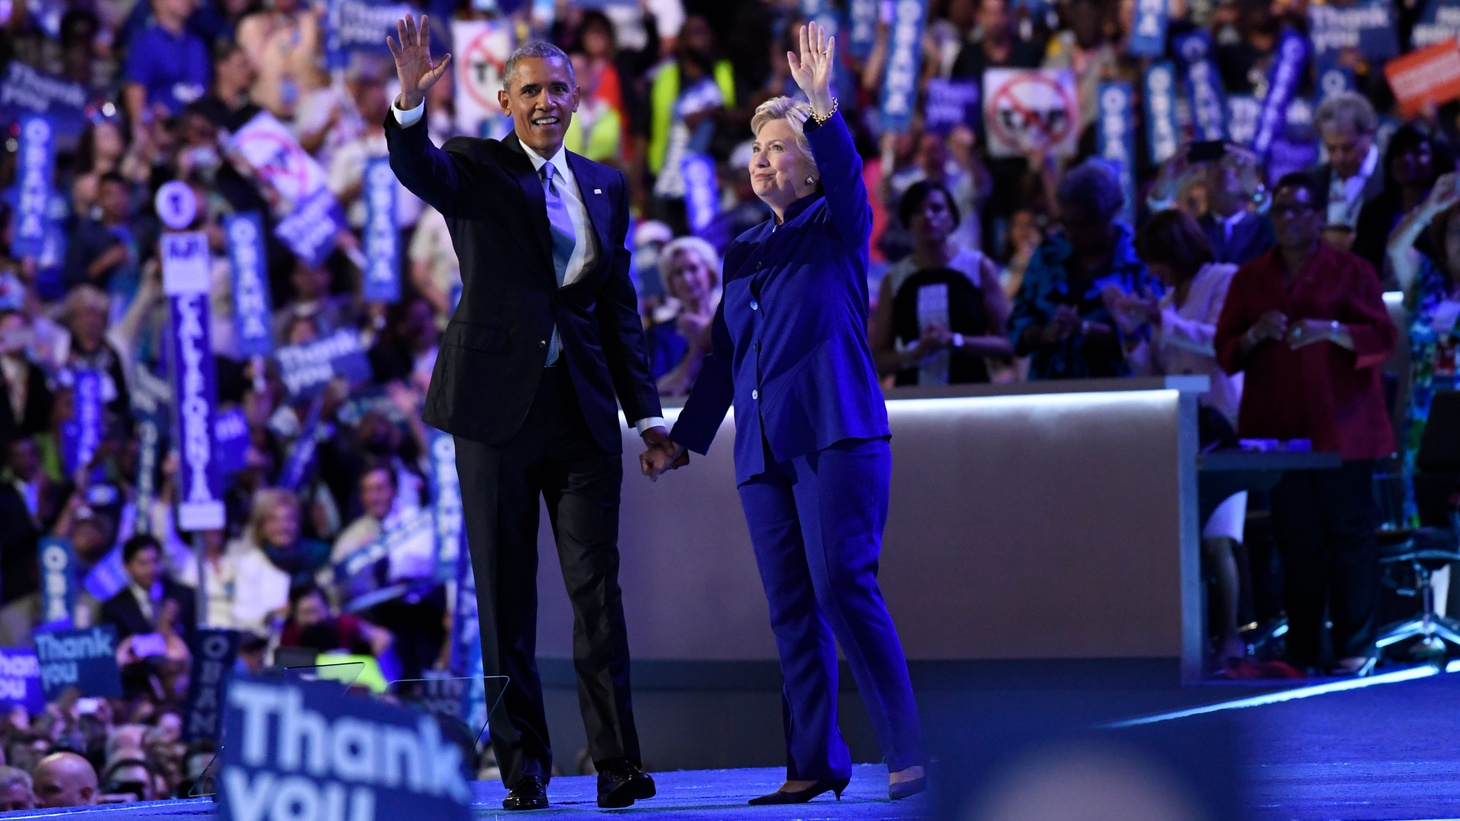 Democratic Presidential nominee Hillary Clinton takes the stage with former President Barack Obama at the conclusion of his speech during the 2016 Democratic National Convention at Wells Fargo Center on July 27, 2016 in Philadelphia.Xxx Rh12531 Jpg A Eln Usa Pa